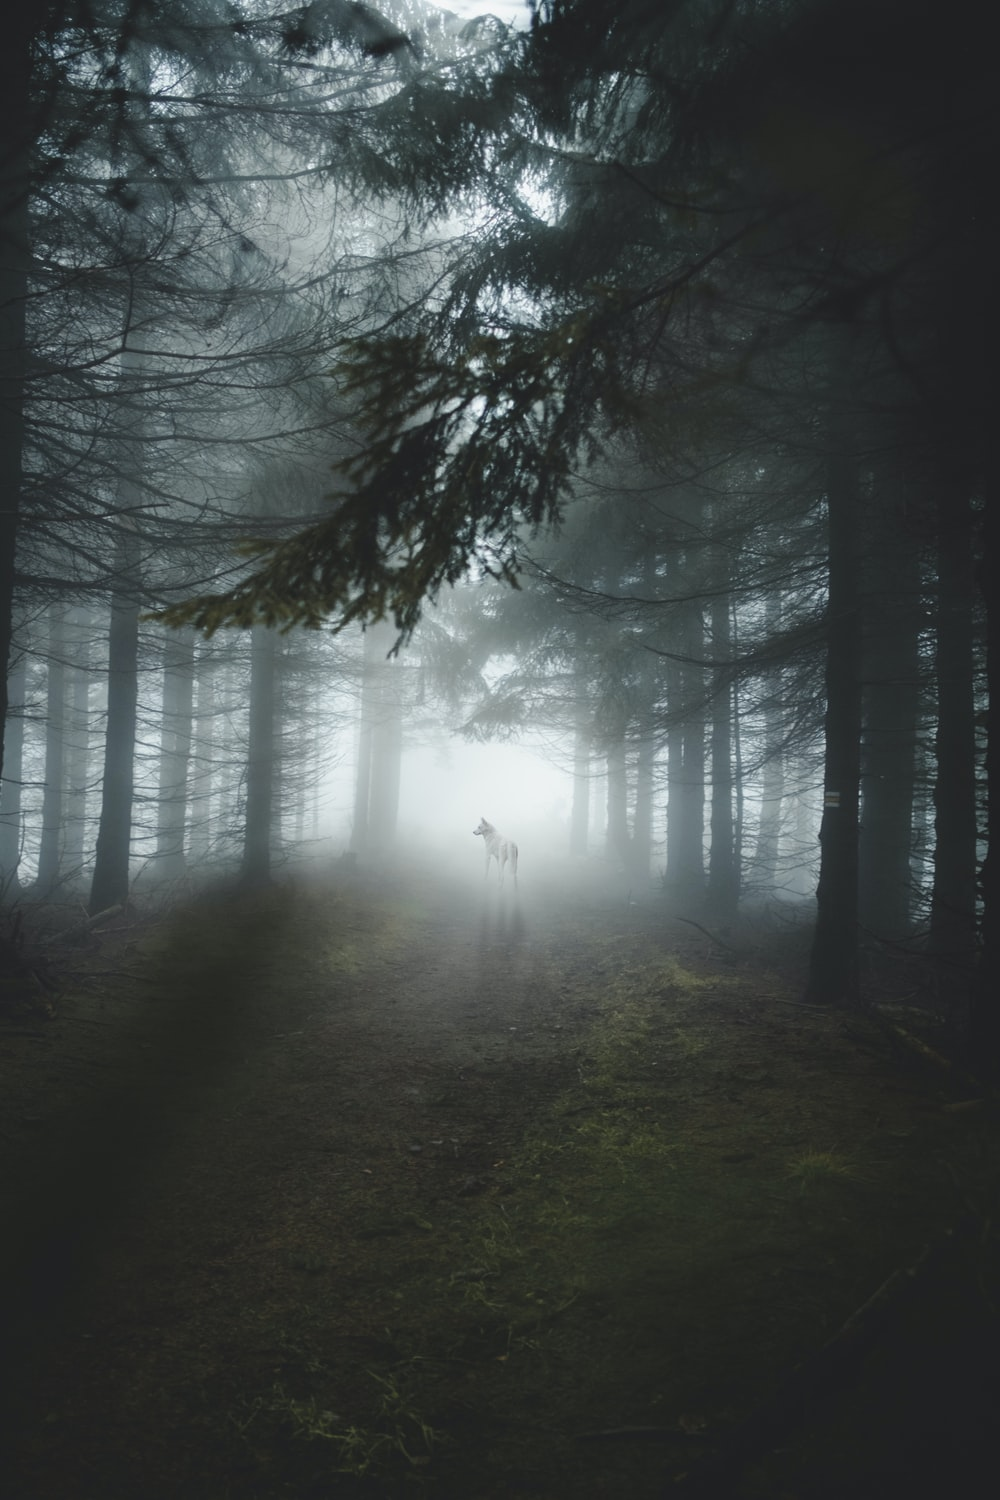 dogs in middle of tall trees during foggy weather